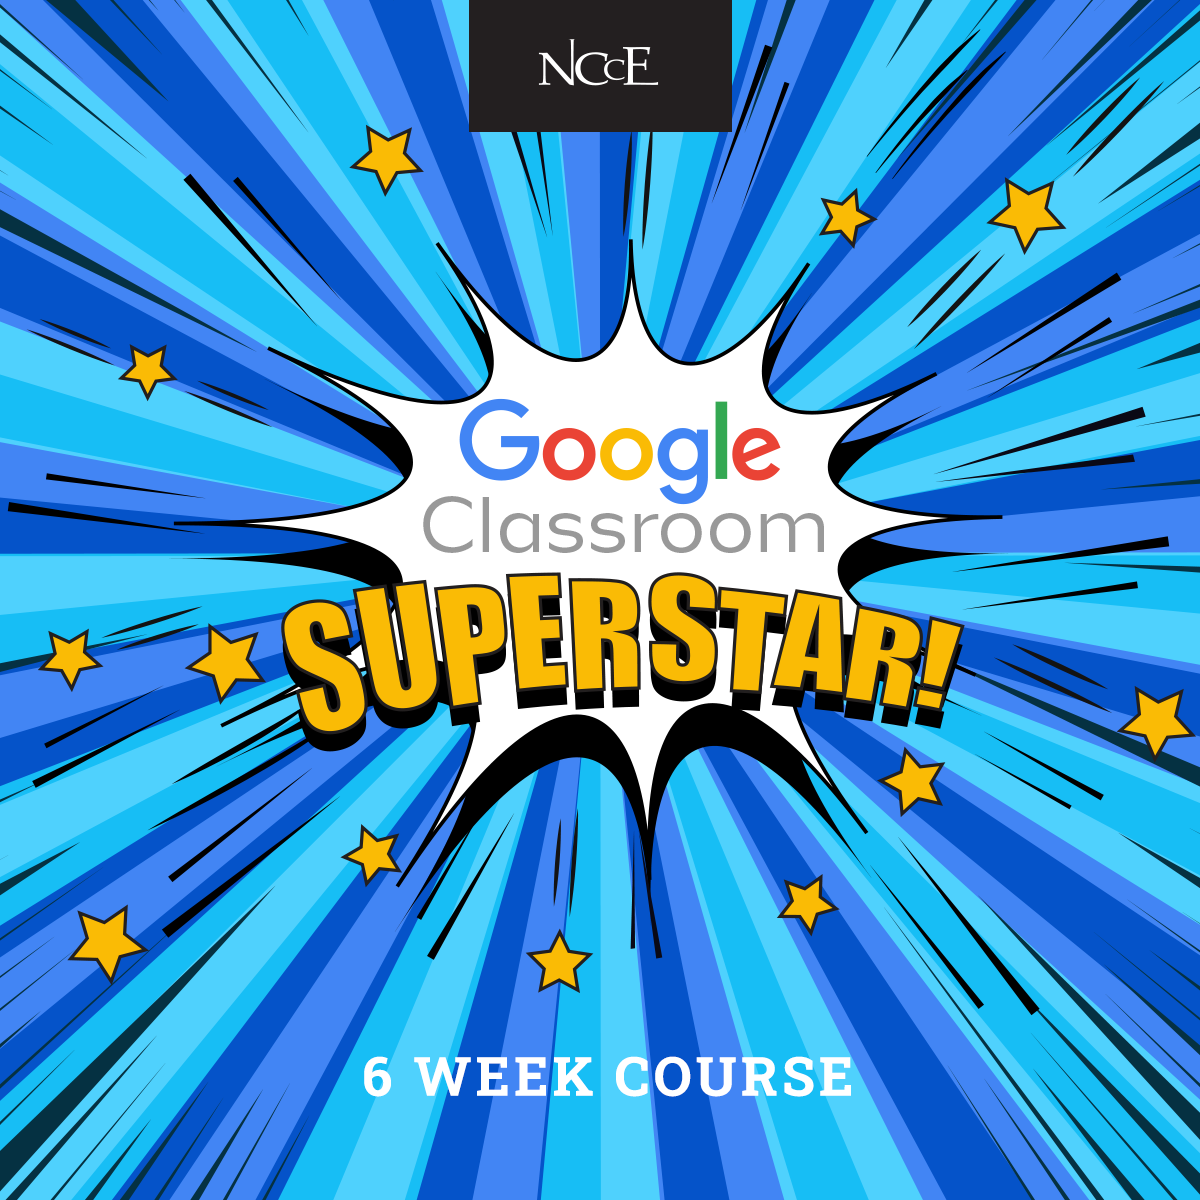 Google superstar